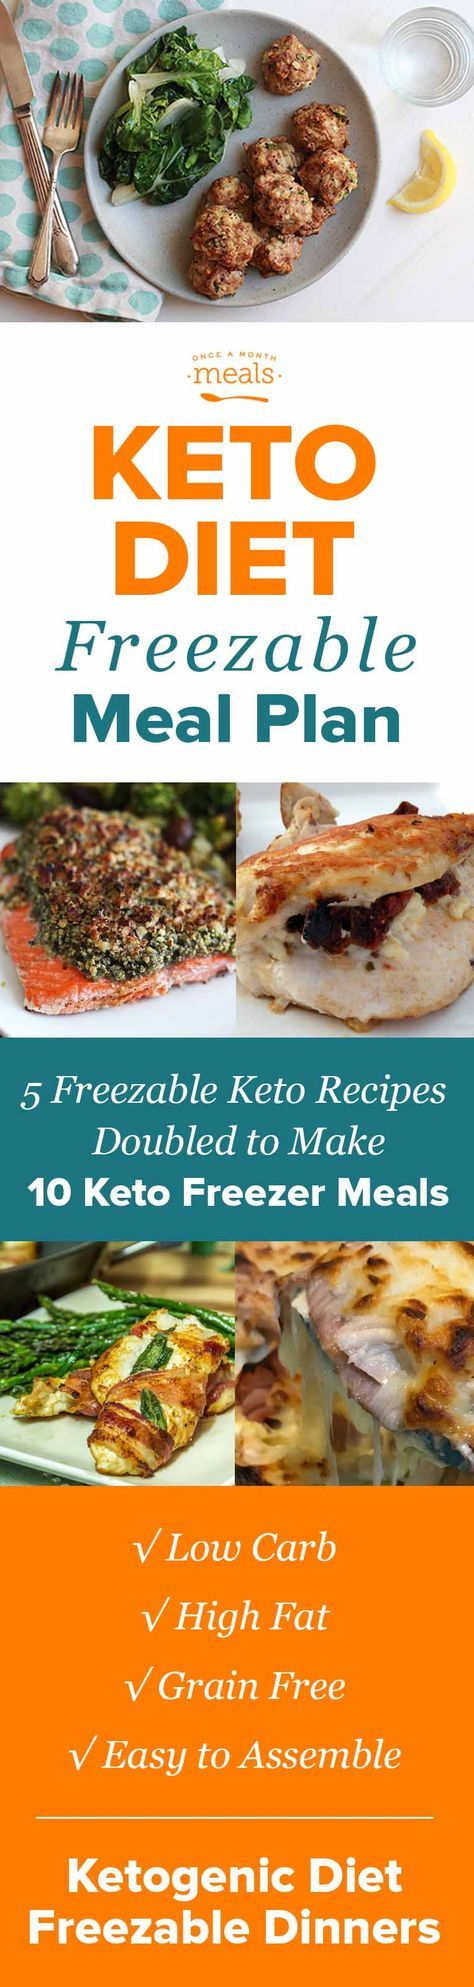 Our Keto Easy Assembly Mini Menu provides you with delicious and easy keto freezer meals that will save you time this holiday season. Savor our Sun Dried Tomato Goat Cheese Chicken and Pecan Crusted Salmon while you stay on your diet! #keto #LowCarb